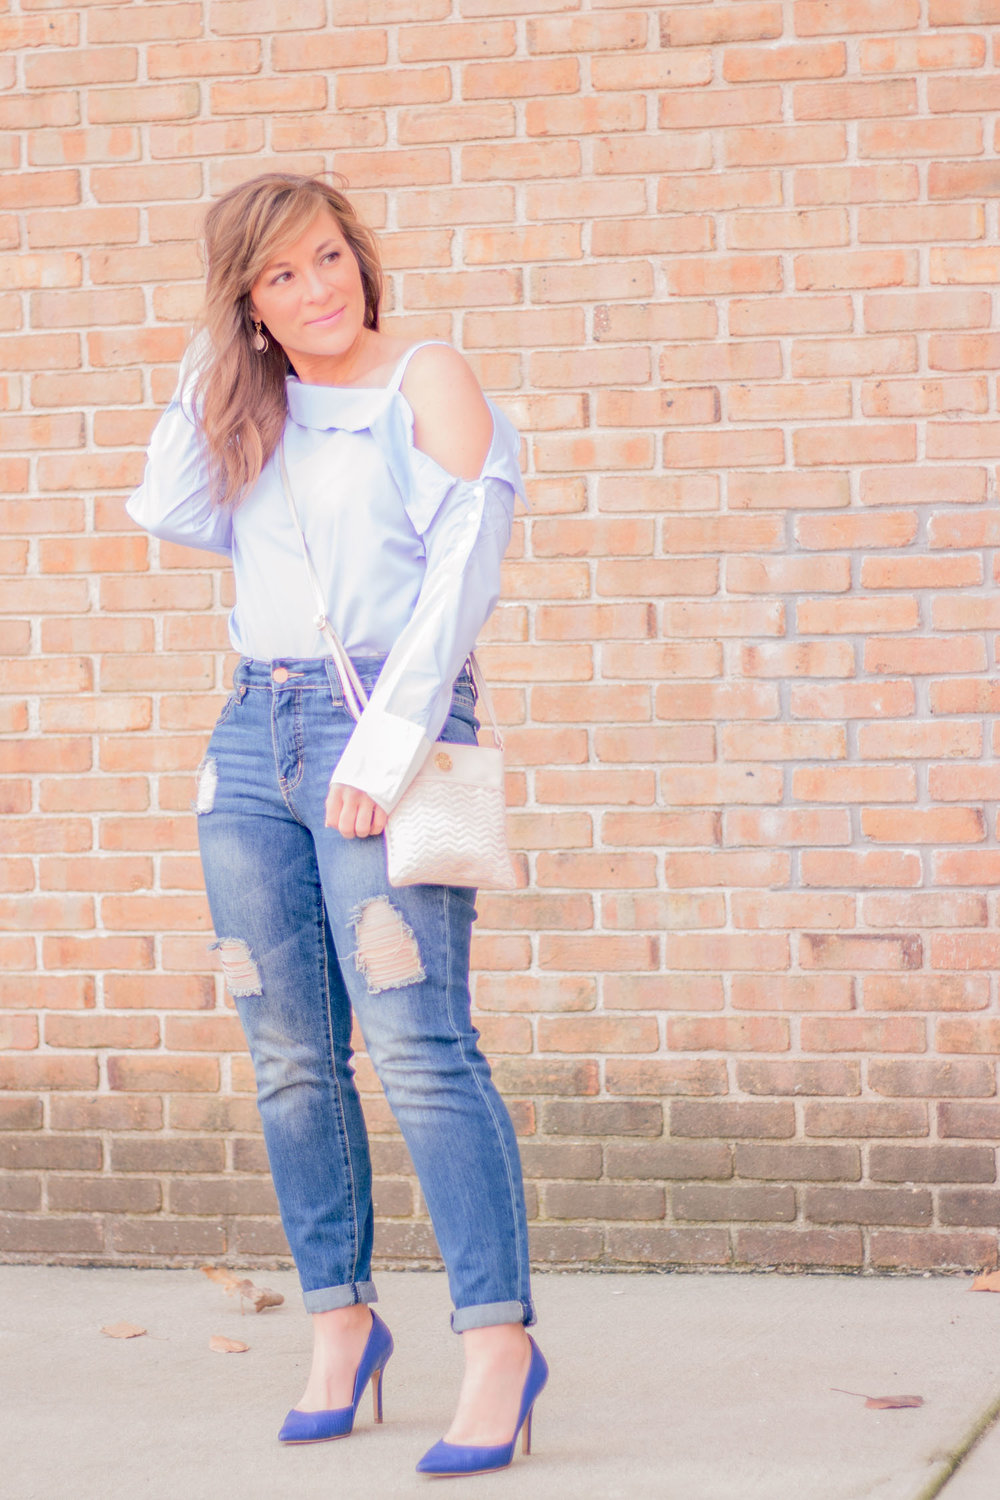 outfits-with-off-the-shoulder-tops.jpg